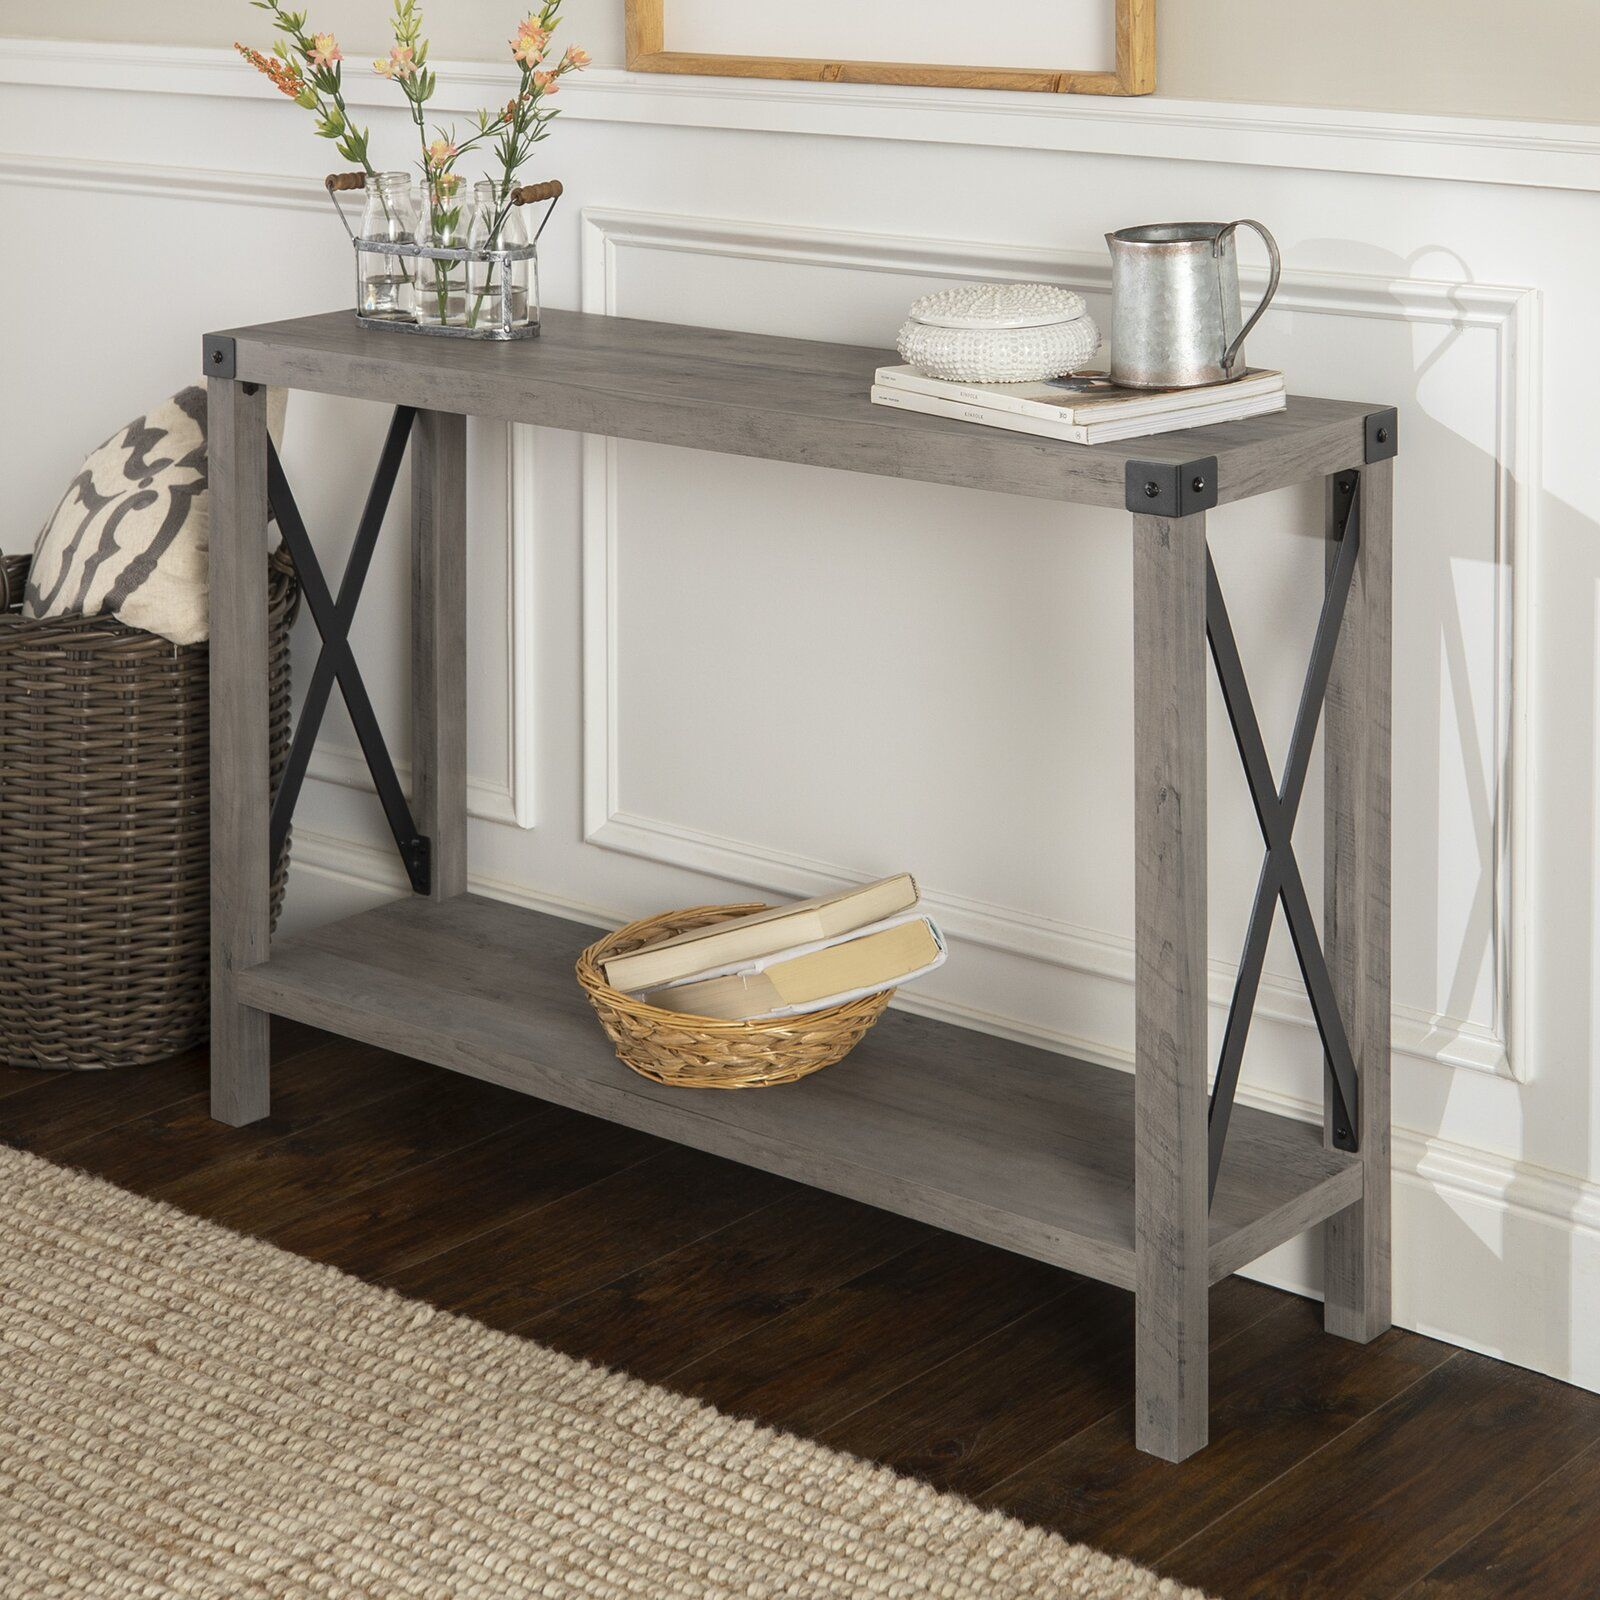 Claymont Urban 46 Console Table Wood Console Table Rustic Entryway Table Furniture